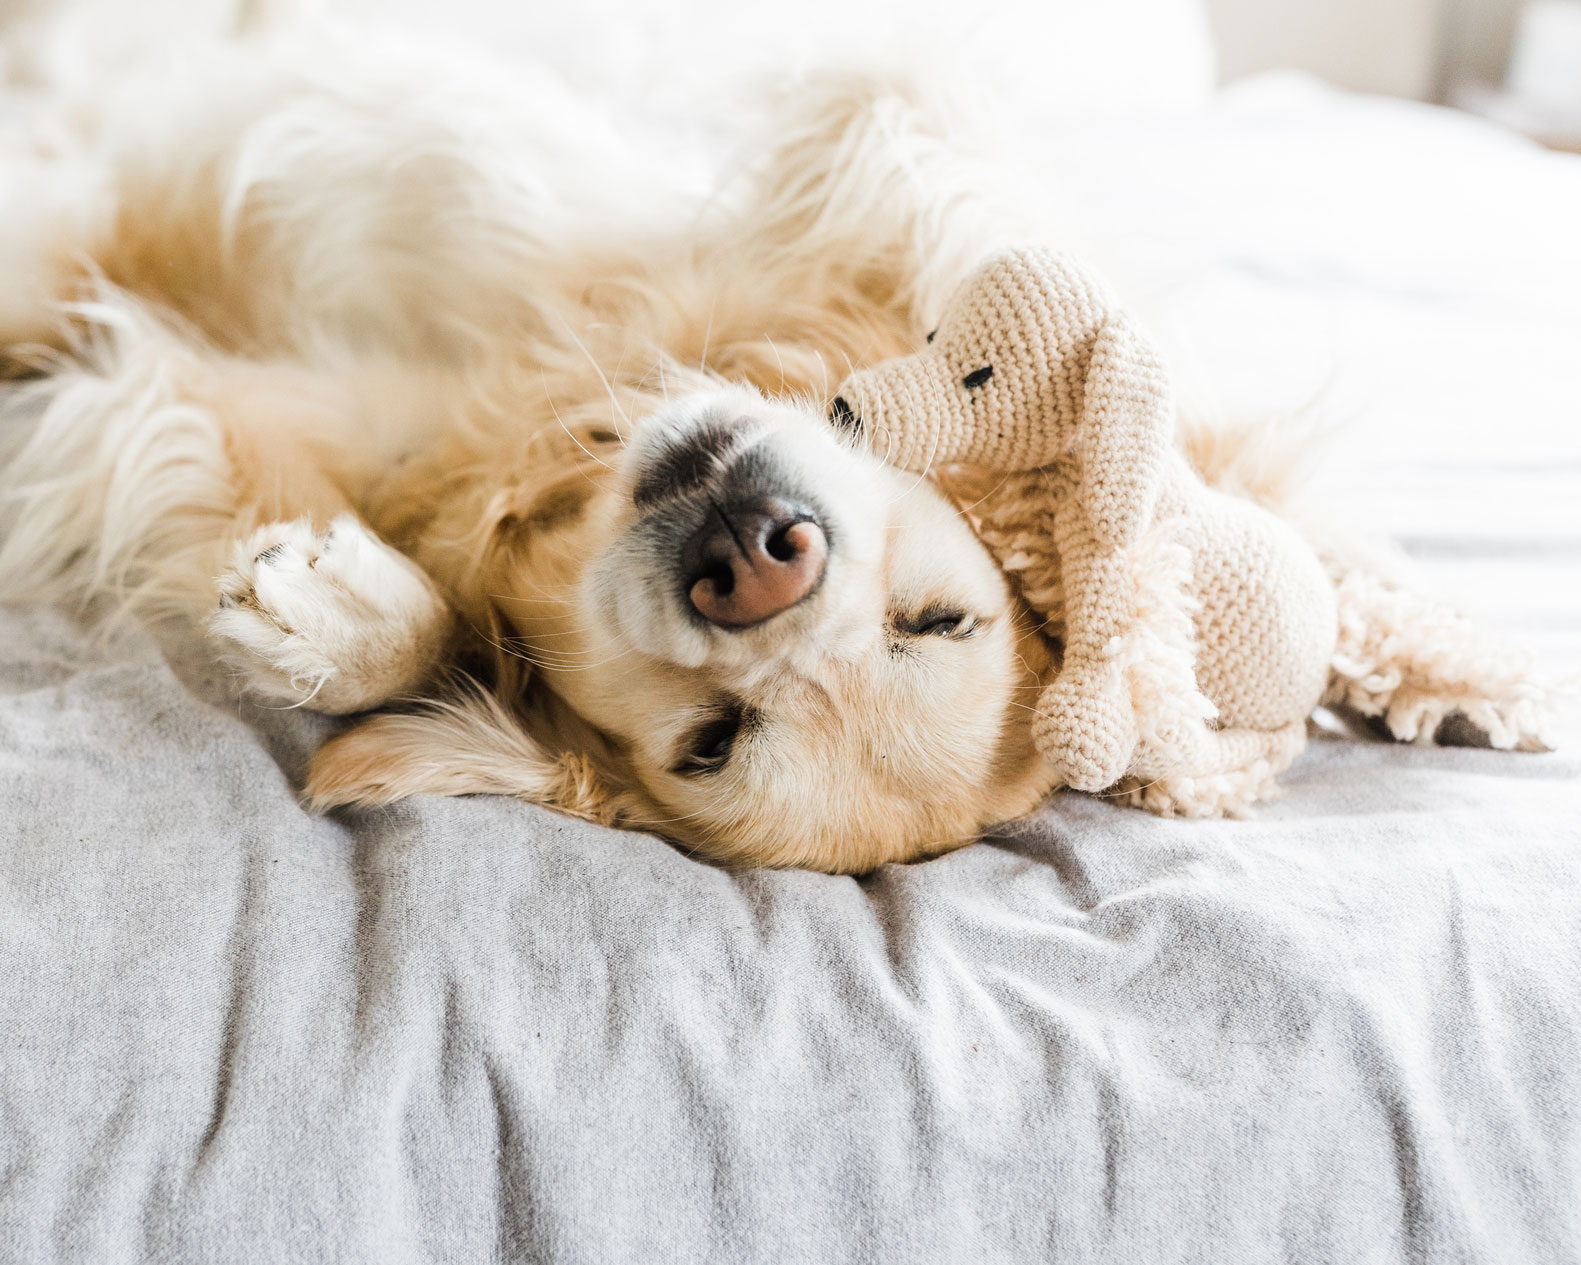 The Fenley Pet-Friendly Dog in Bed